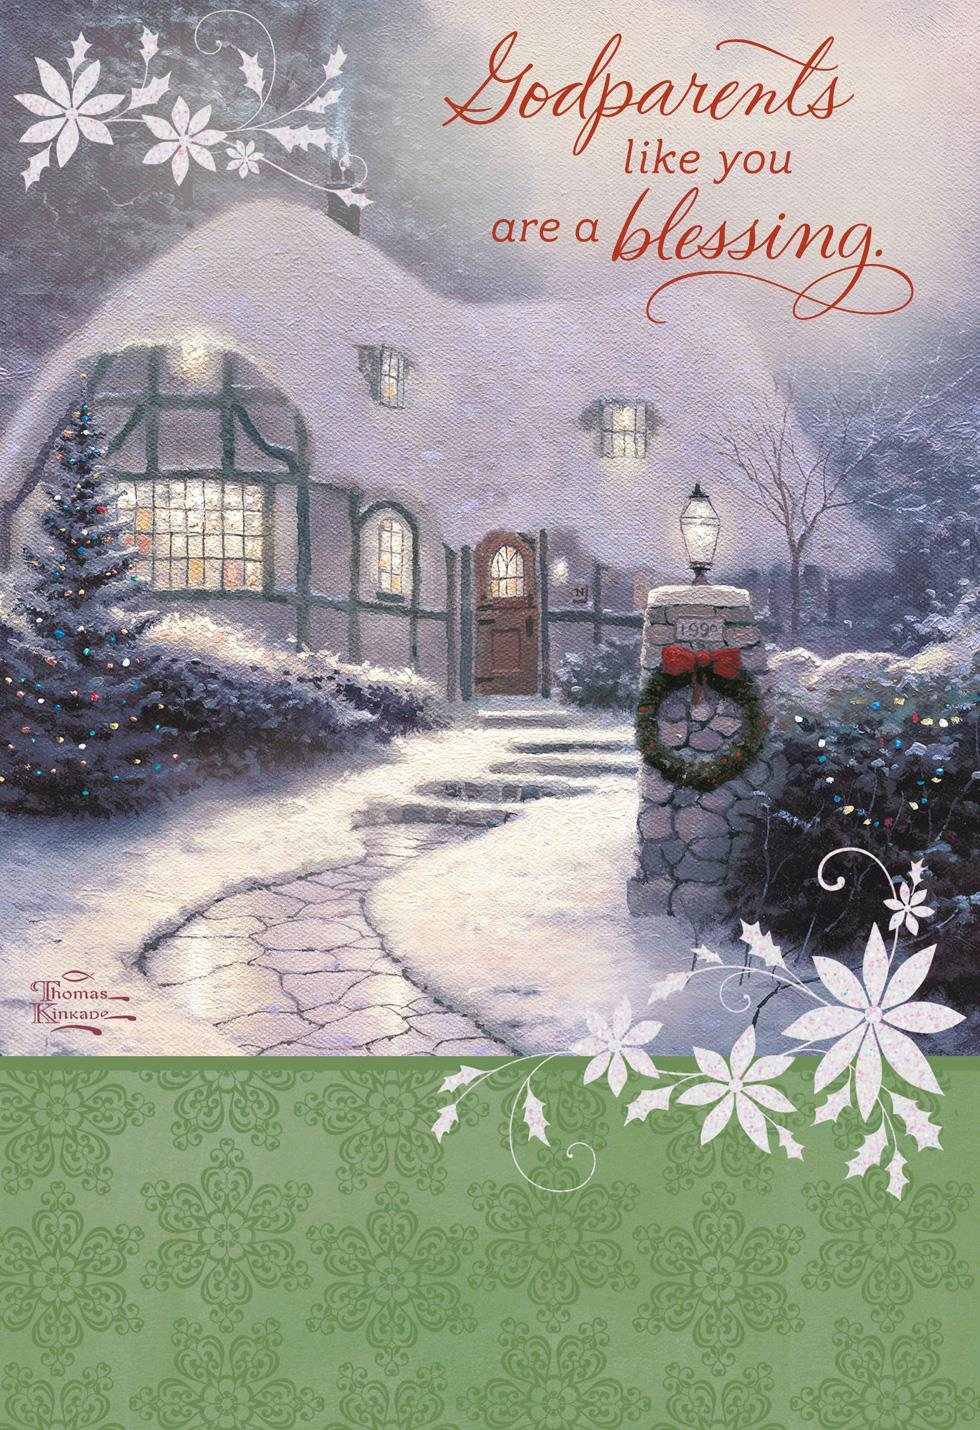 Thomas kinkade youre a blessing godparents religious christmas thomas kinkade youre a blessing godparents religious christmas card kristyandbryce Gallery